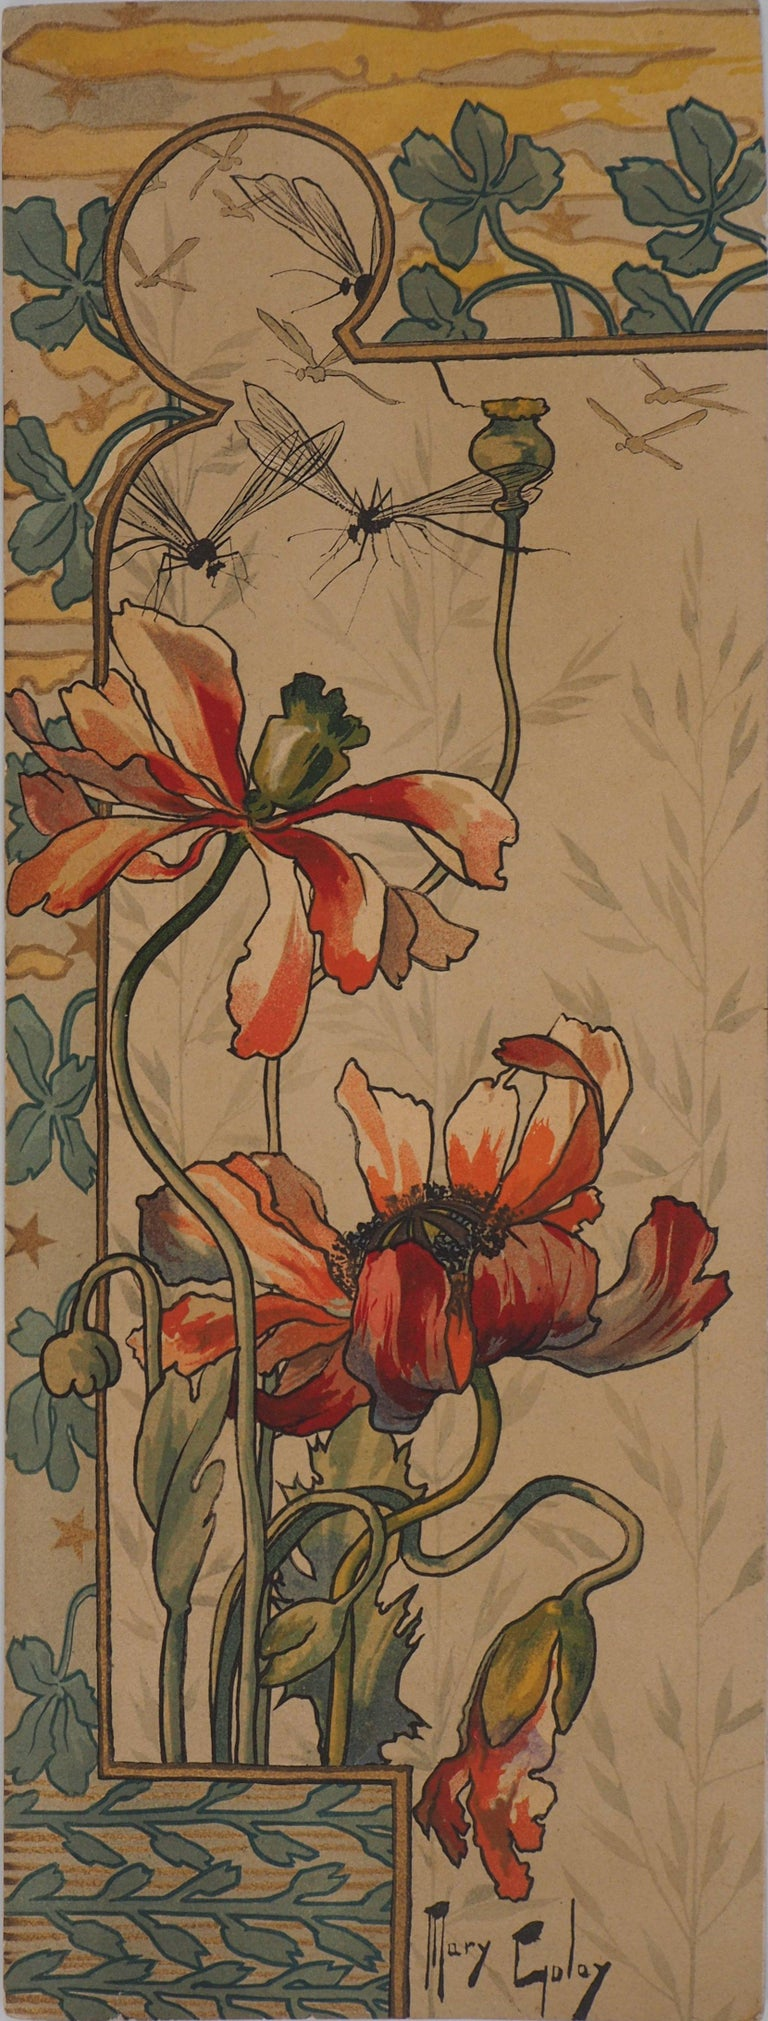 Mary Golay Landscape Print - Red Poppies and Flydragons - Original lithograph